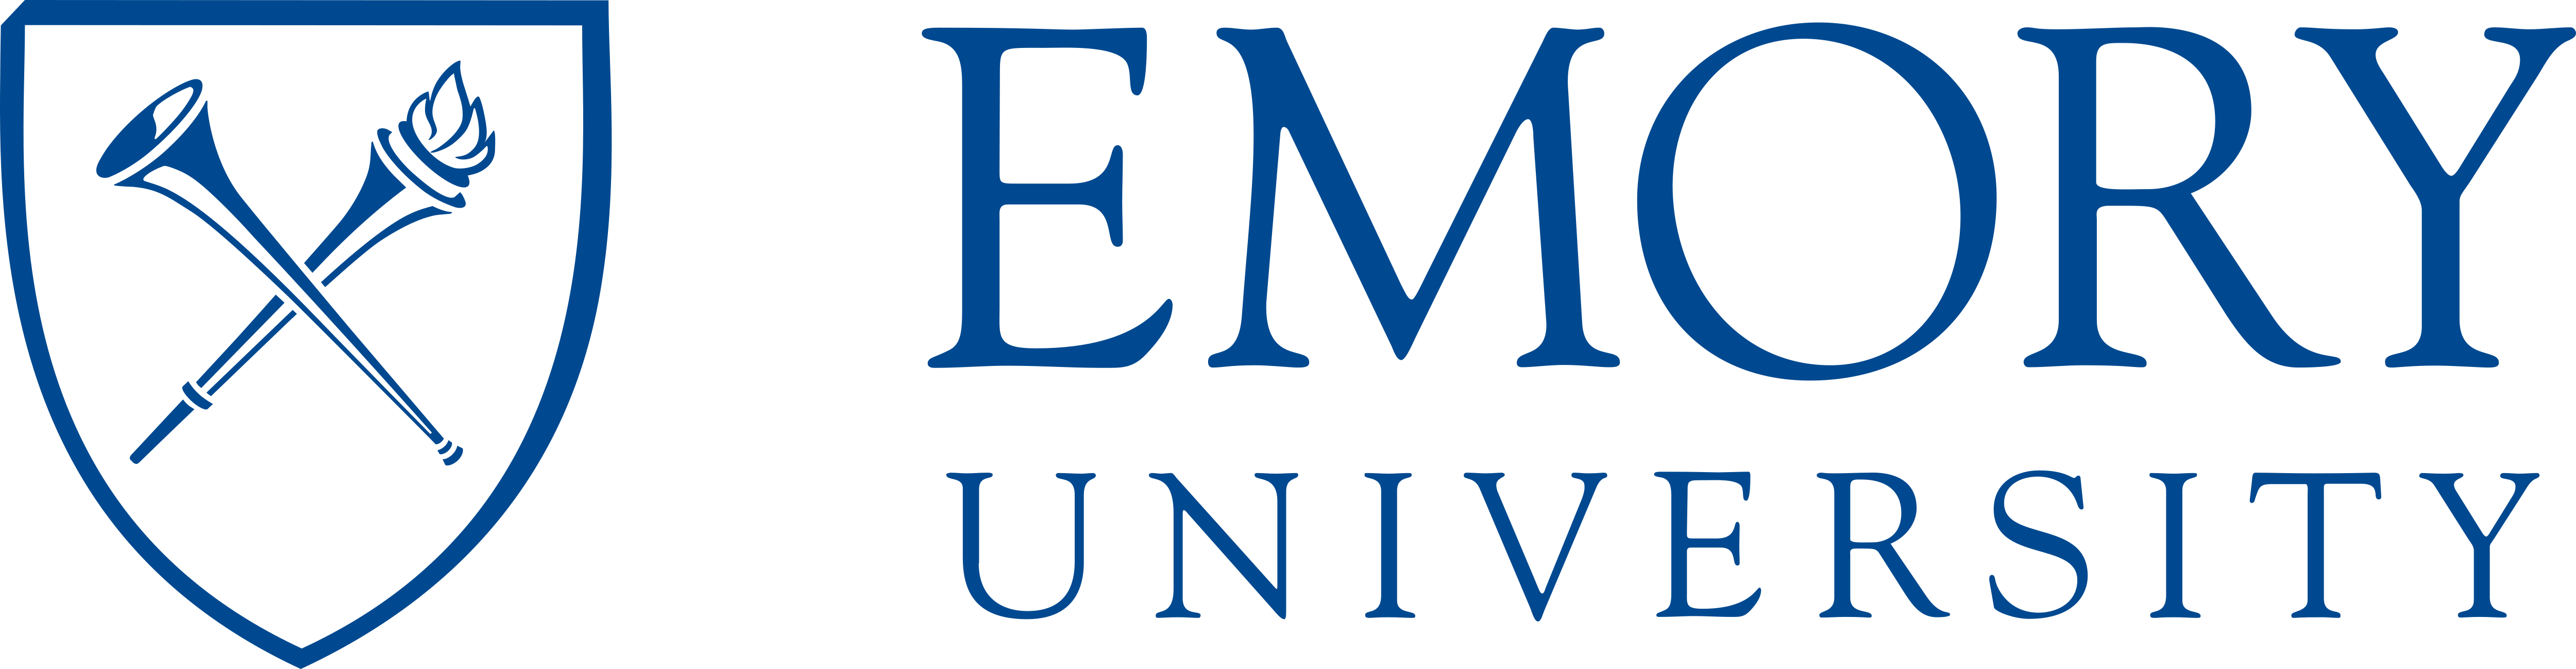 Image result for emory university logo TRANSPARENT